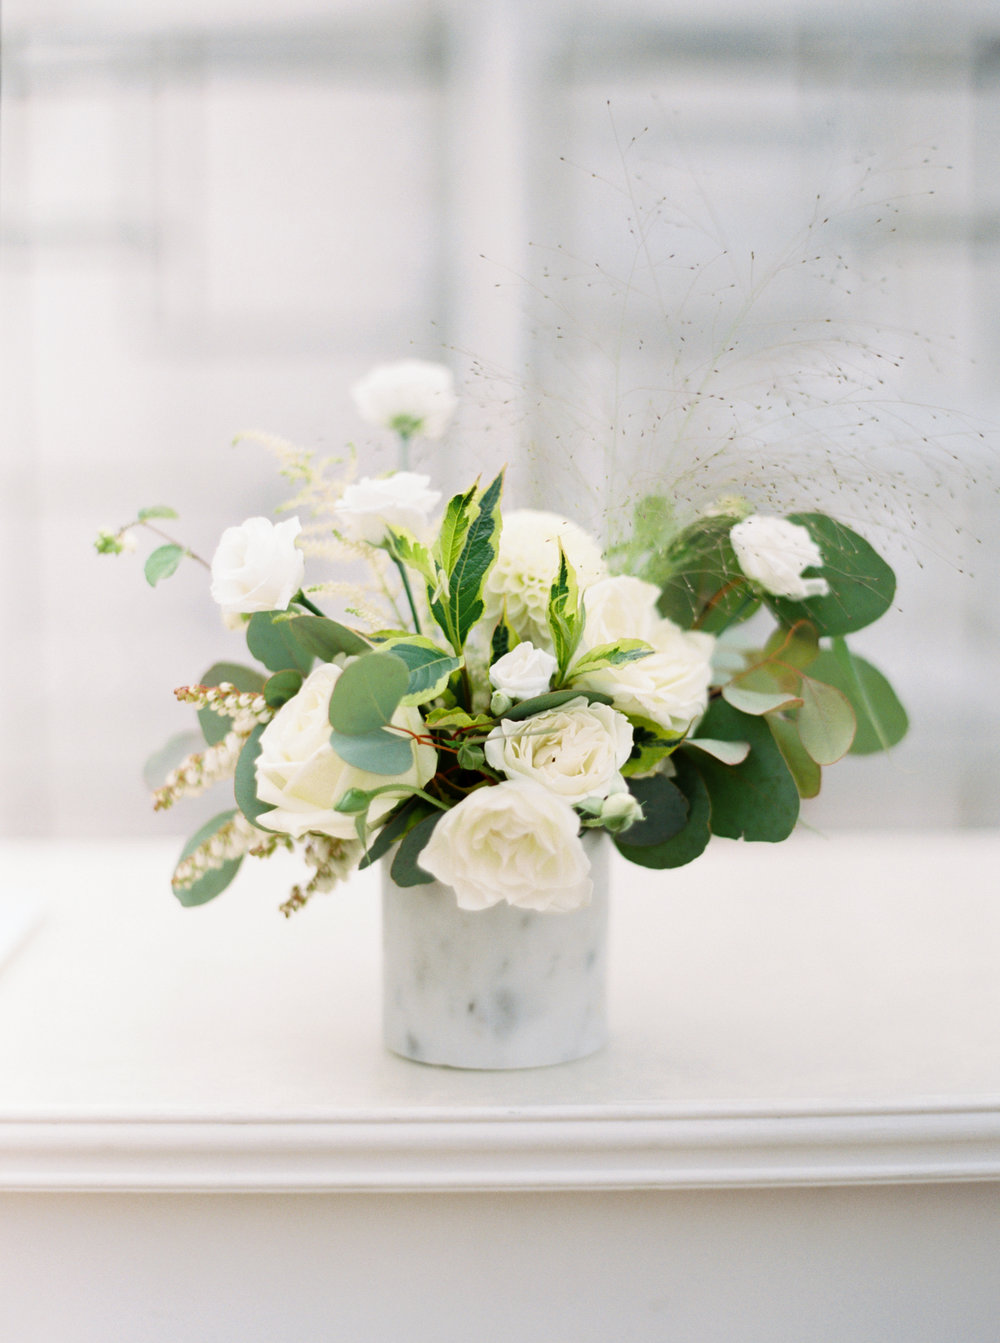 Wild Bloom Floral - Sarah Carpenter Photography - Callista and Co Event Planning 21.JPG